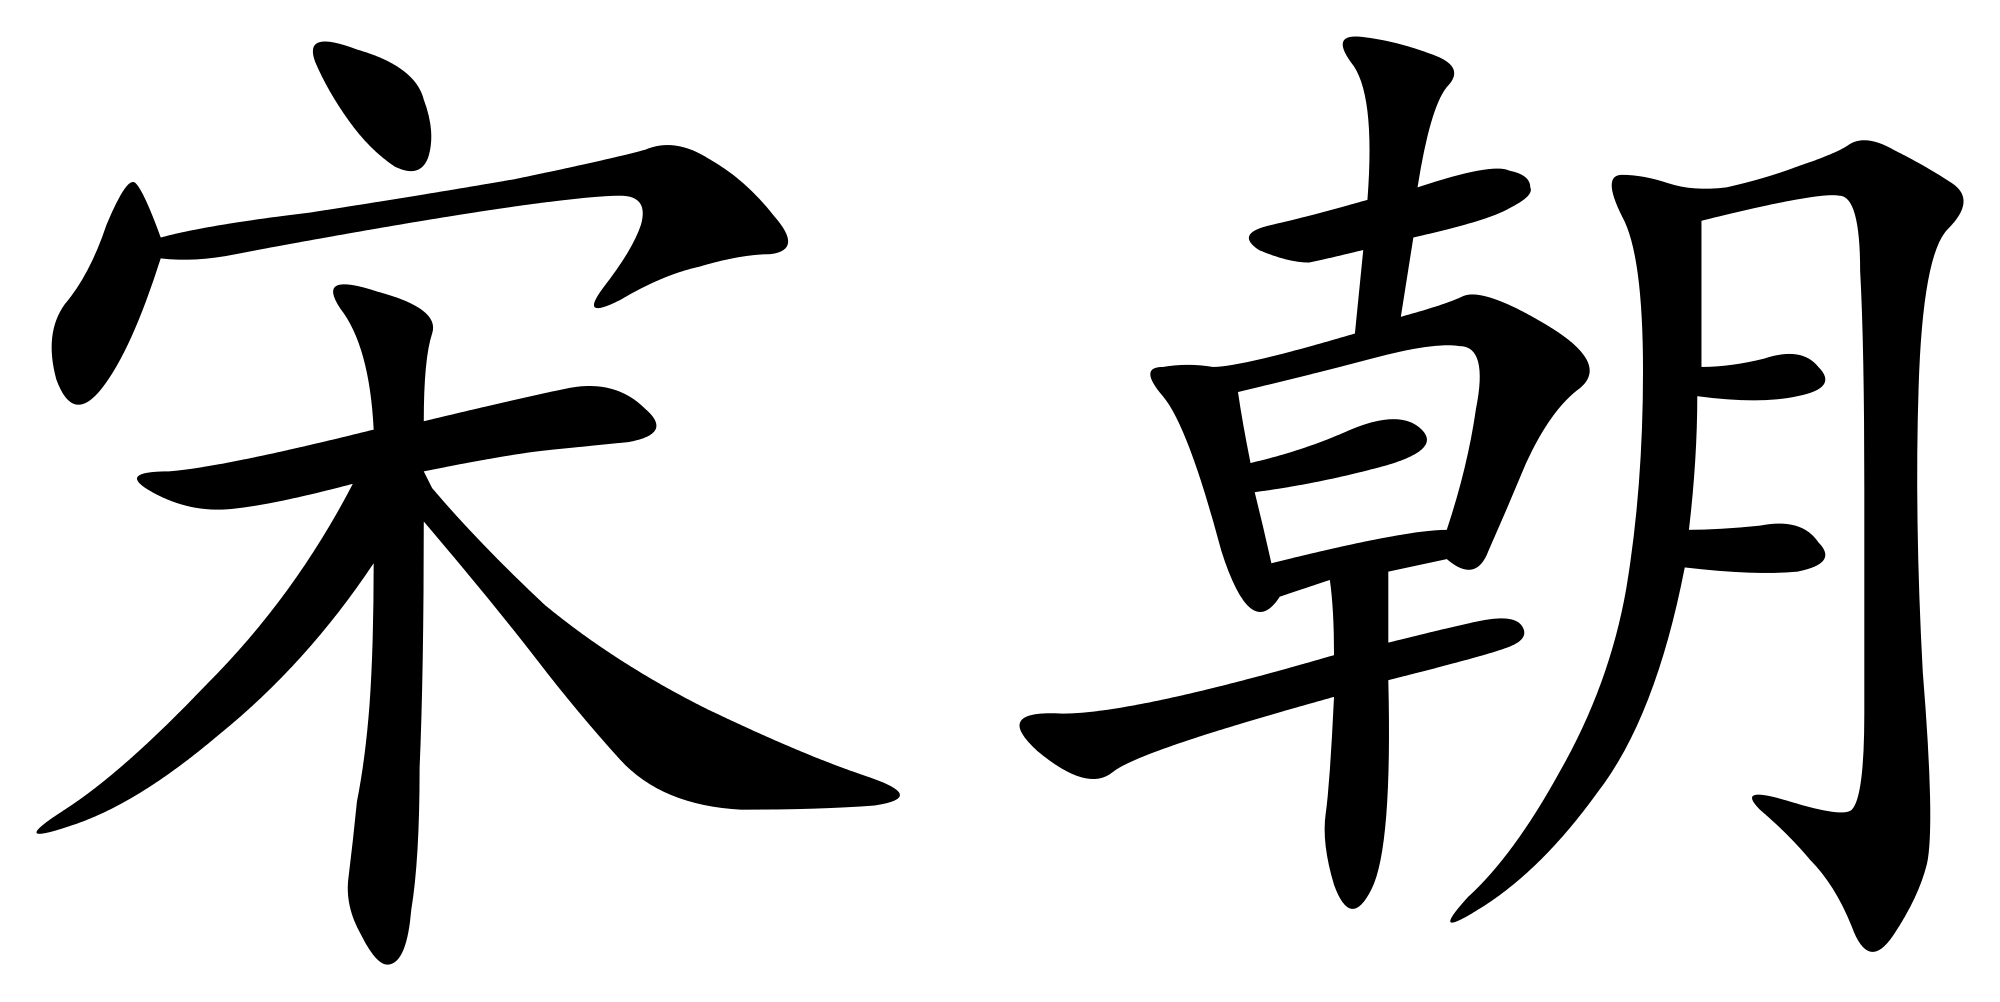 File:Song dynasty (Chinese characters).svg - Wikimedia Commons